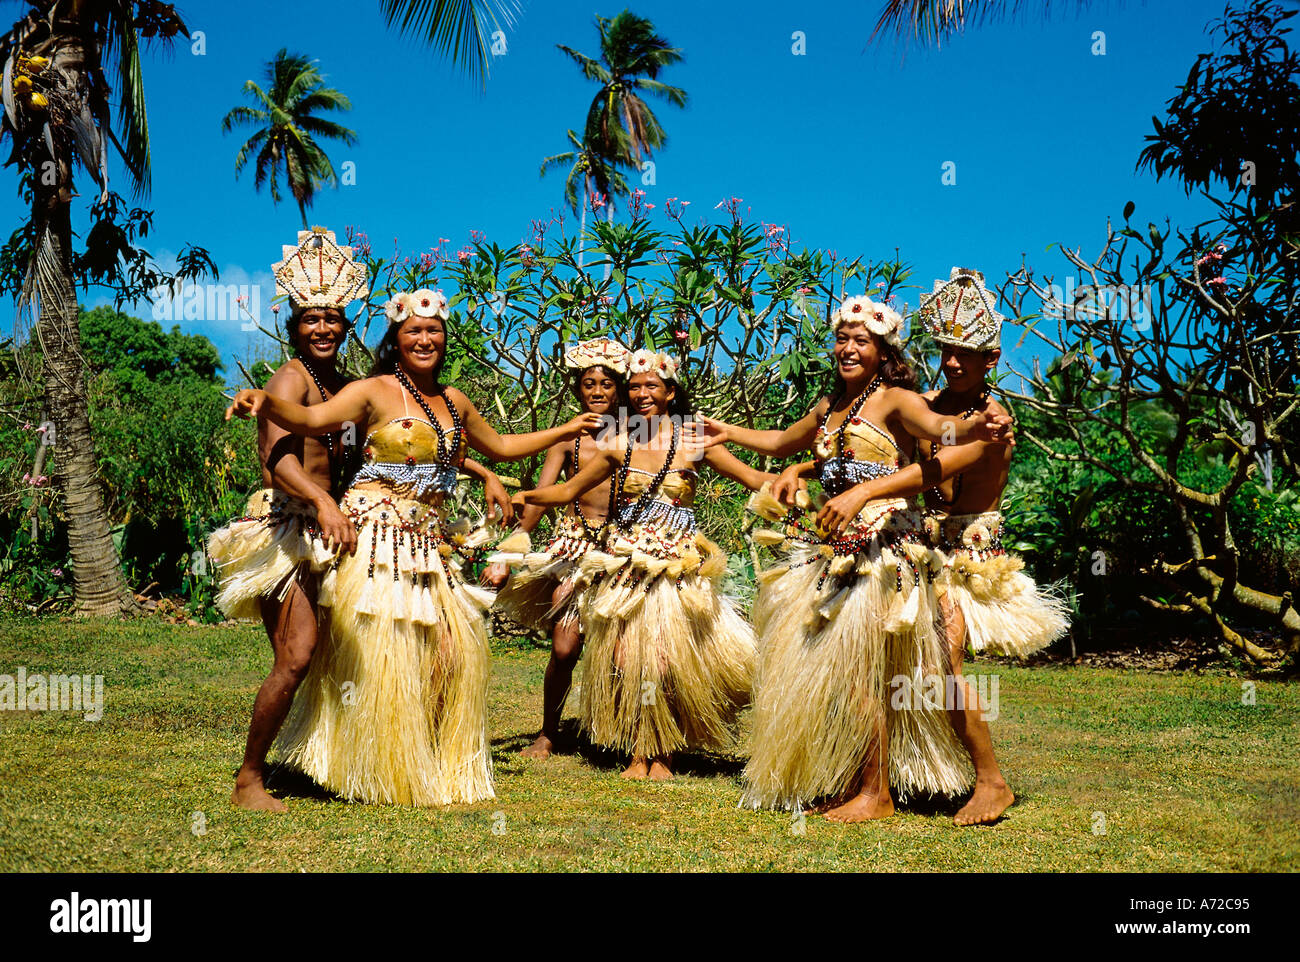 Ethnic Polynesian Dancing at Aitutaki Cook Island South Pacific - Stock Image